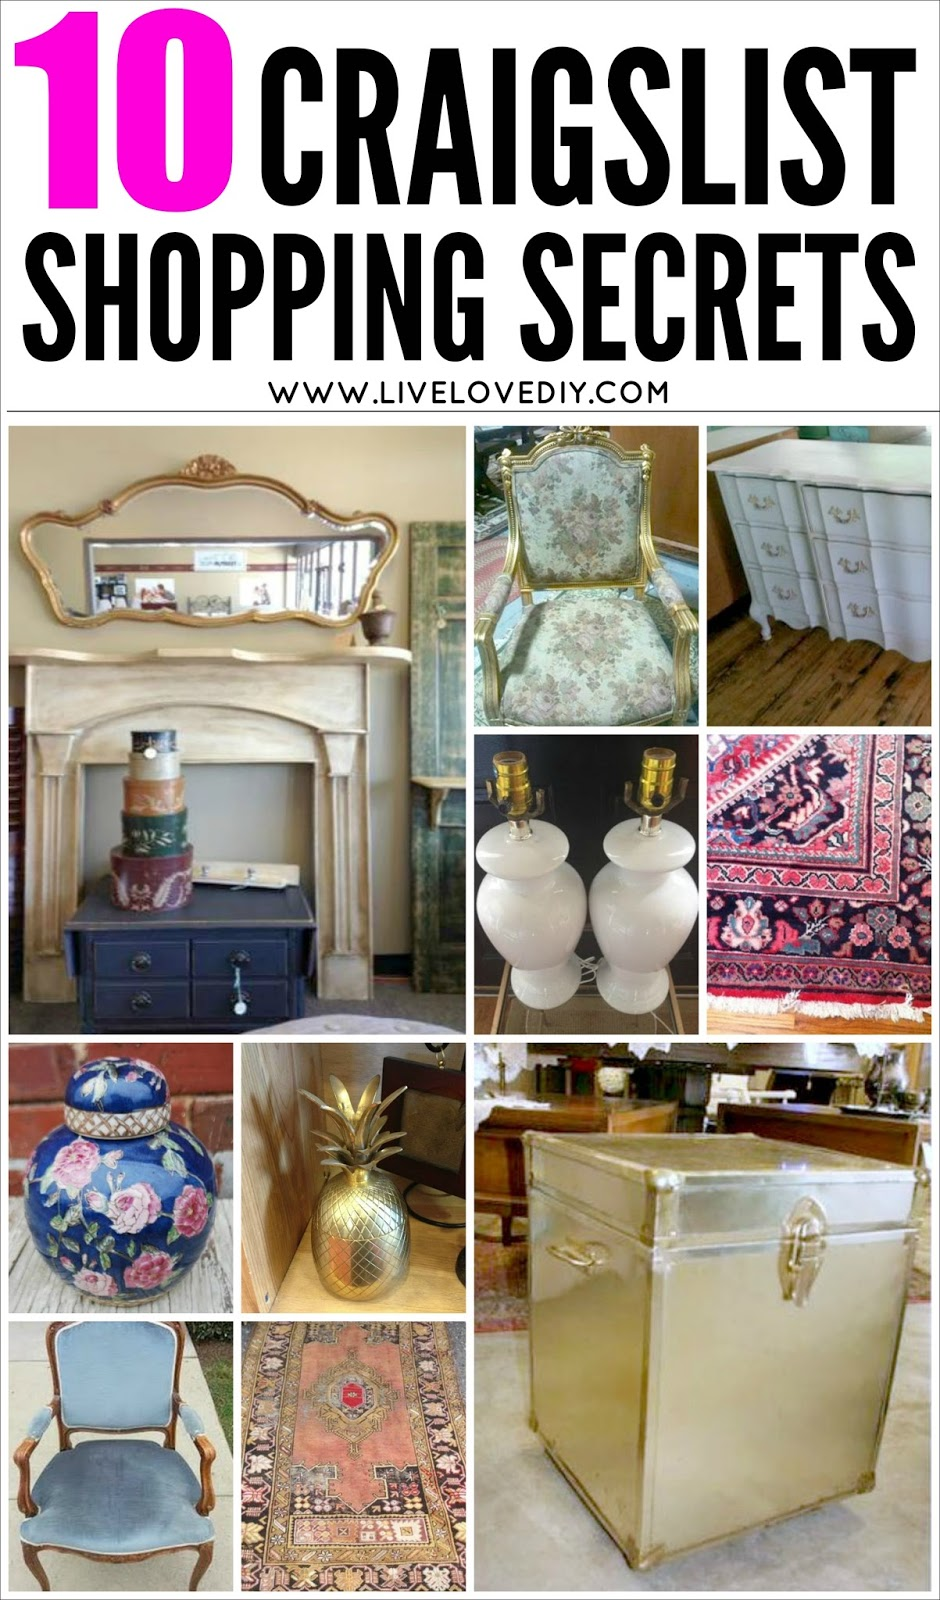 LiveLoveDIY: 10 Secrets for Buying The Best Furniture on Craigslist